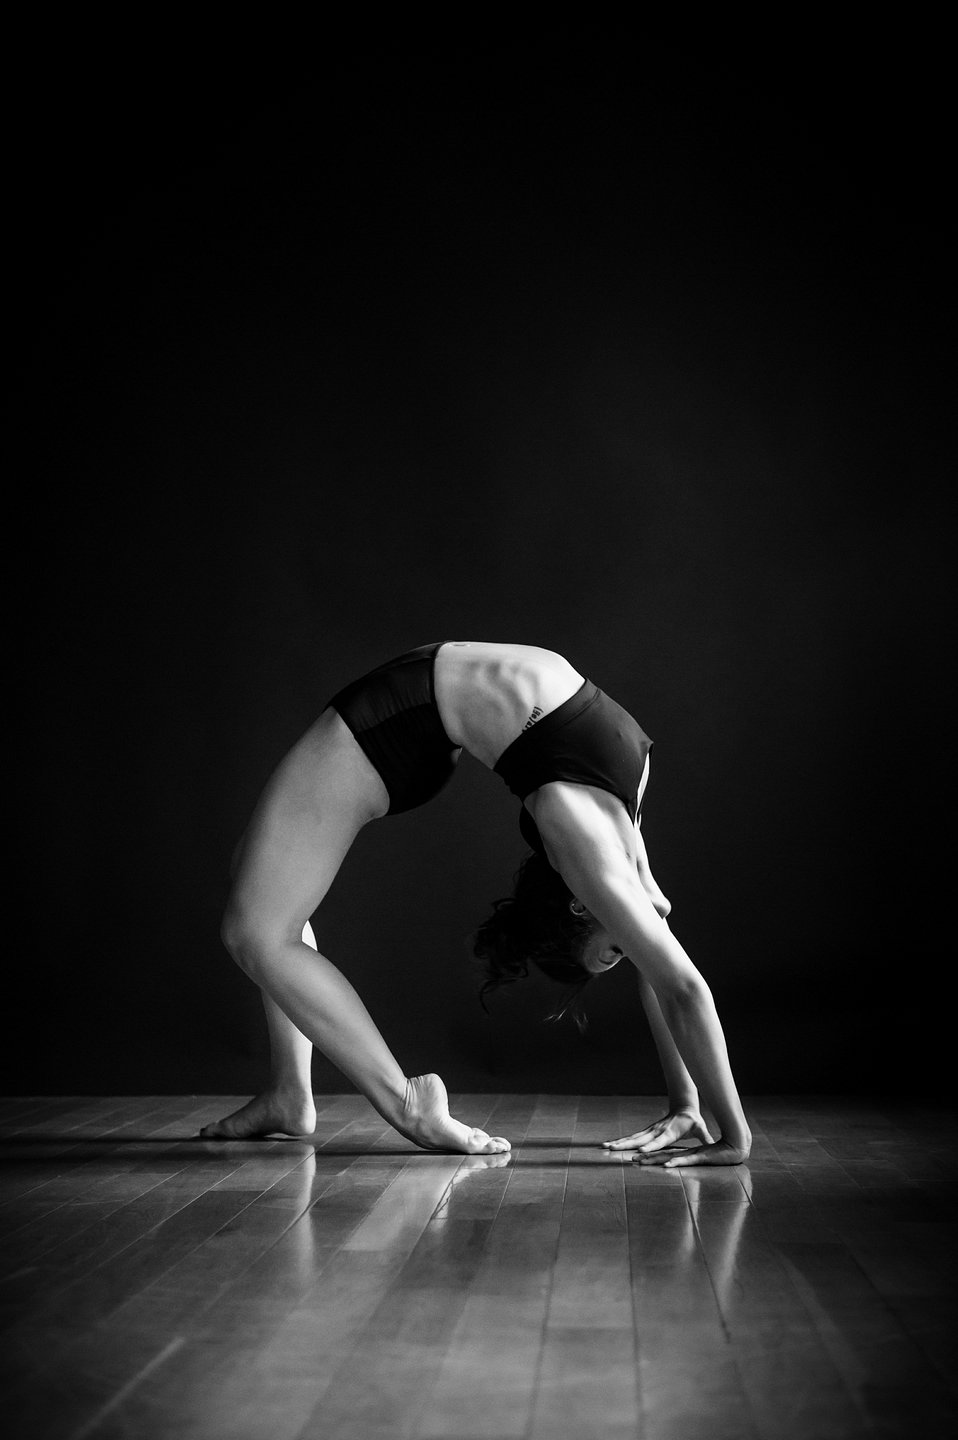 Los Angeles Dance Portrait Photo - Stephanie Abrams - by Tommy Xing Photography 02.jpg